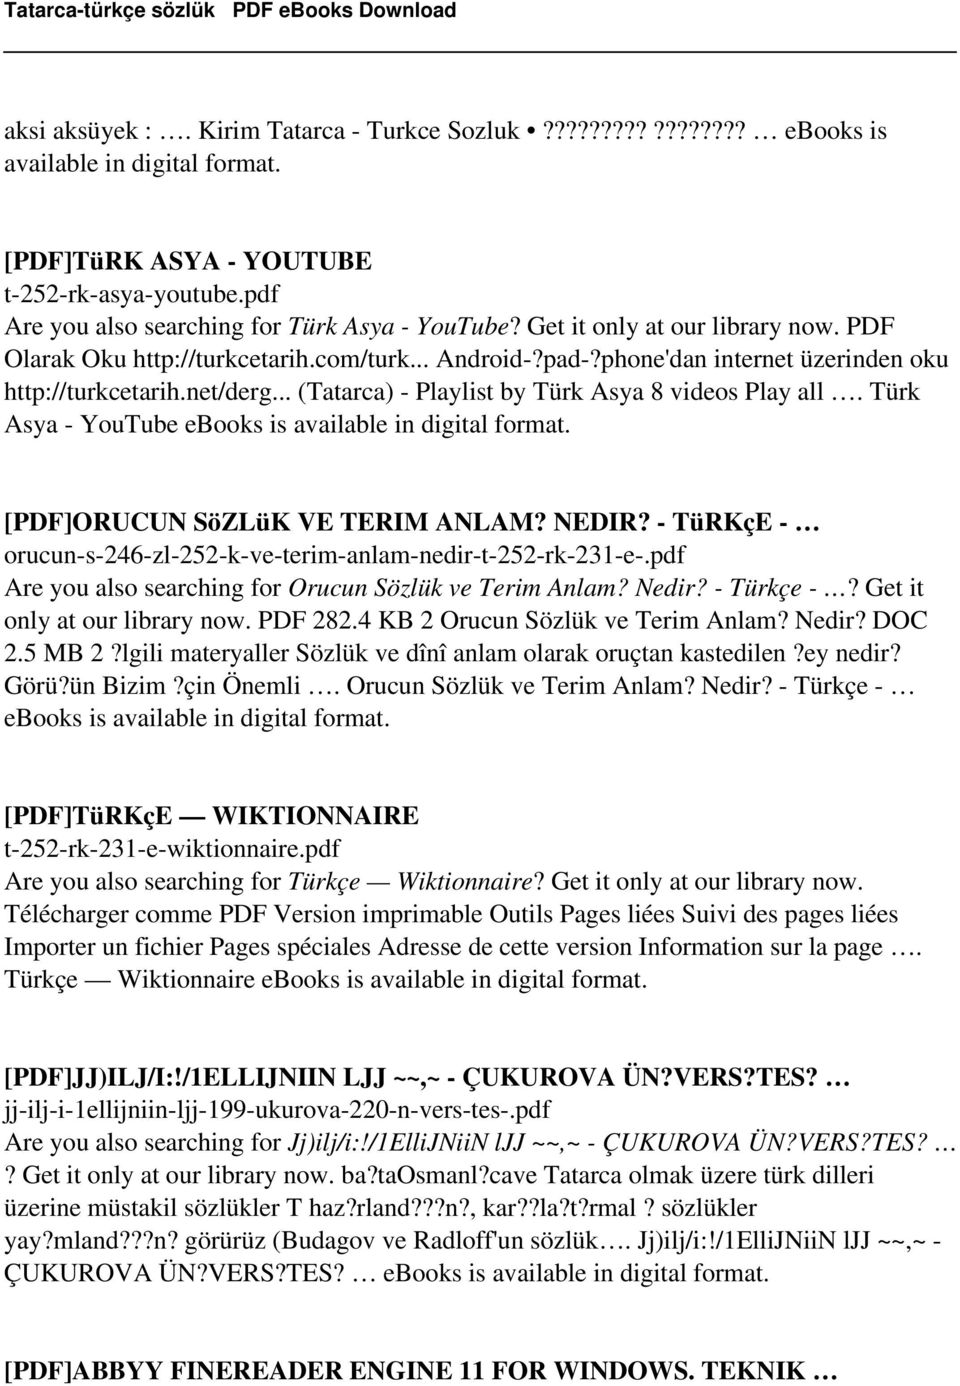 .. (Tatarca) - Playlist by Türk Asya 8 videos Play all. Türk Asya - YouTube ebooks is [PDF]ORUCUN SöZLüK VE TERIM ANLAM? NEDIR? - TüRKçE - orucun-s-246-zl-252-k-ve-terim-anlam-nedir-t-252-rk-231-e-.